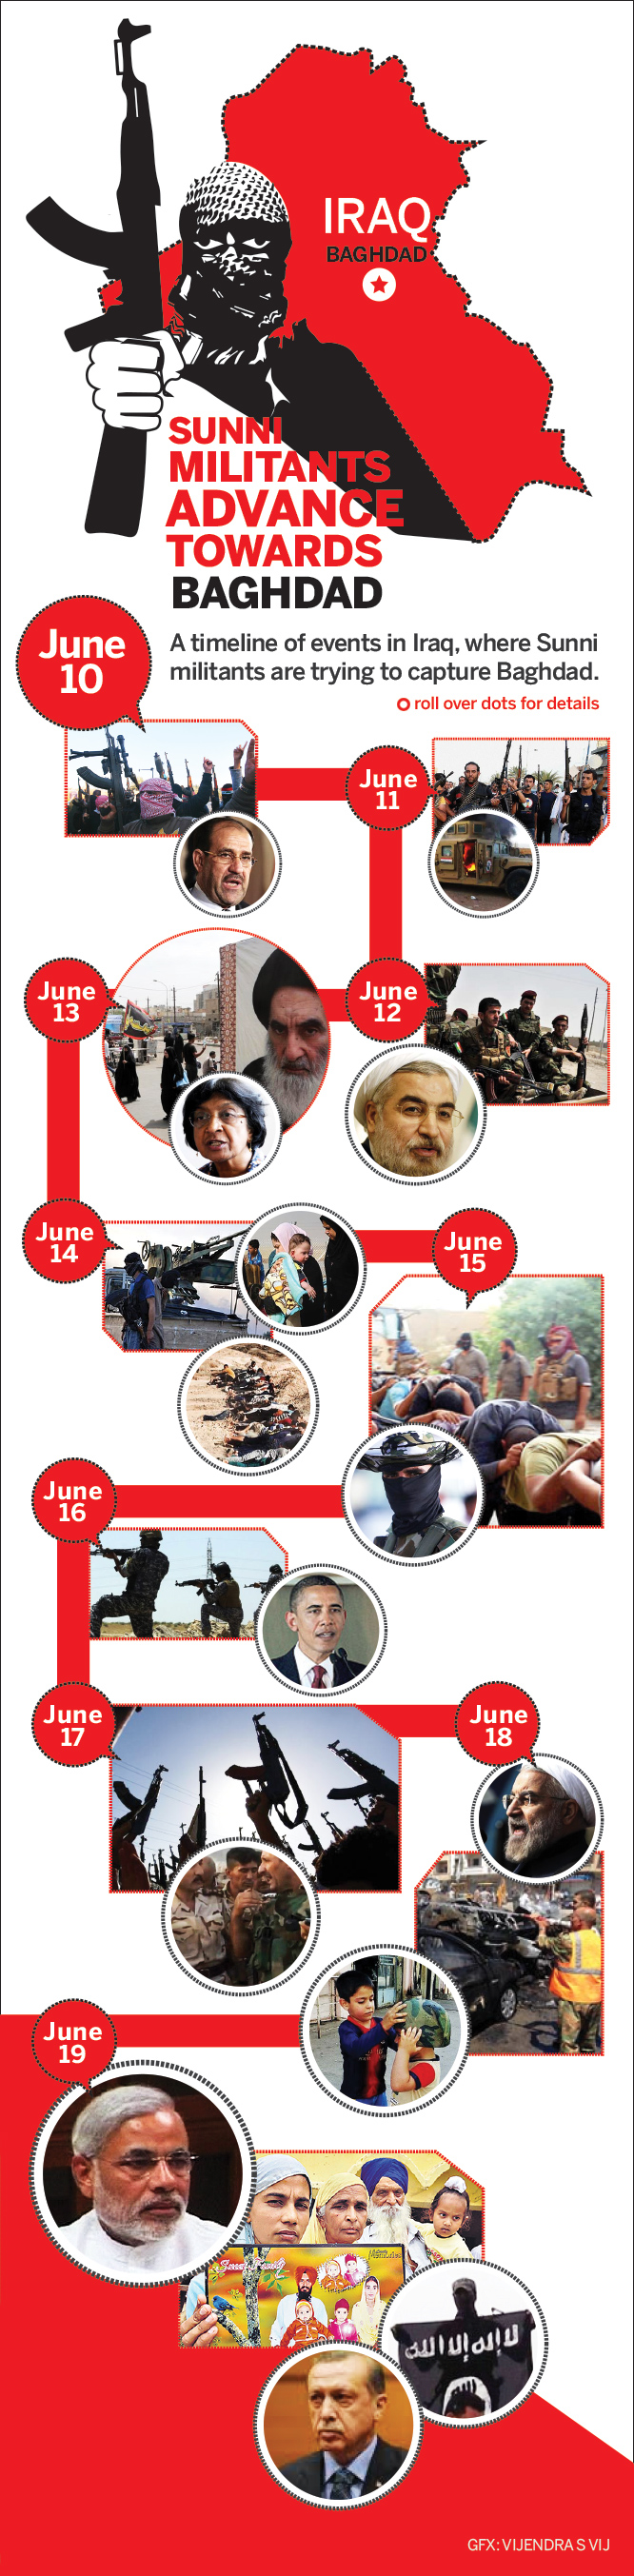 A timeline of events in Iraq